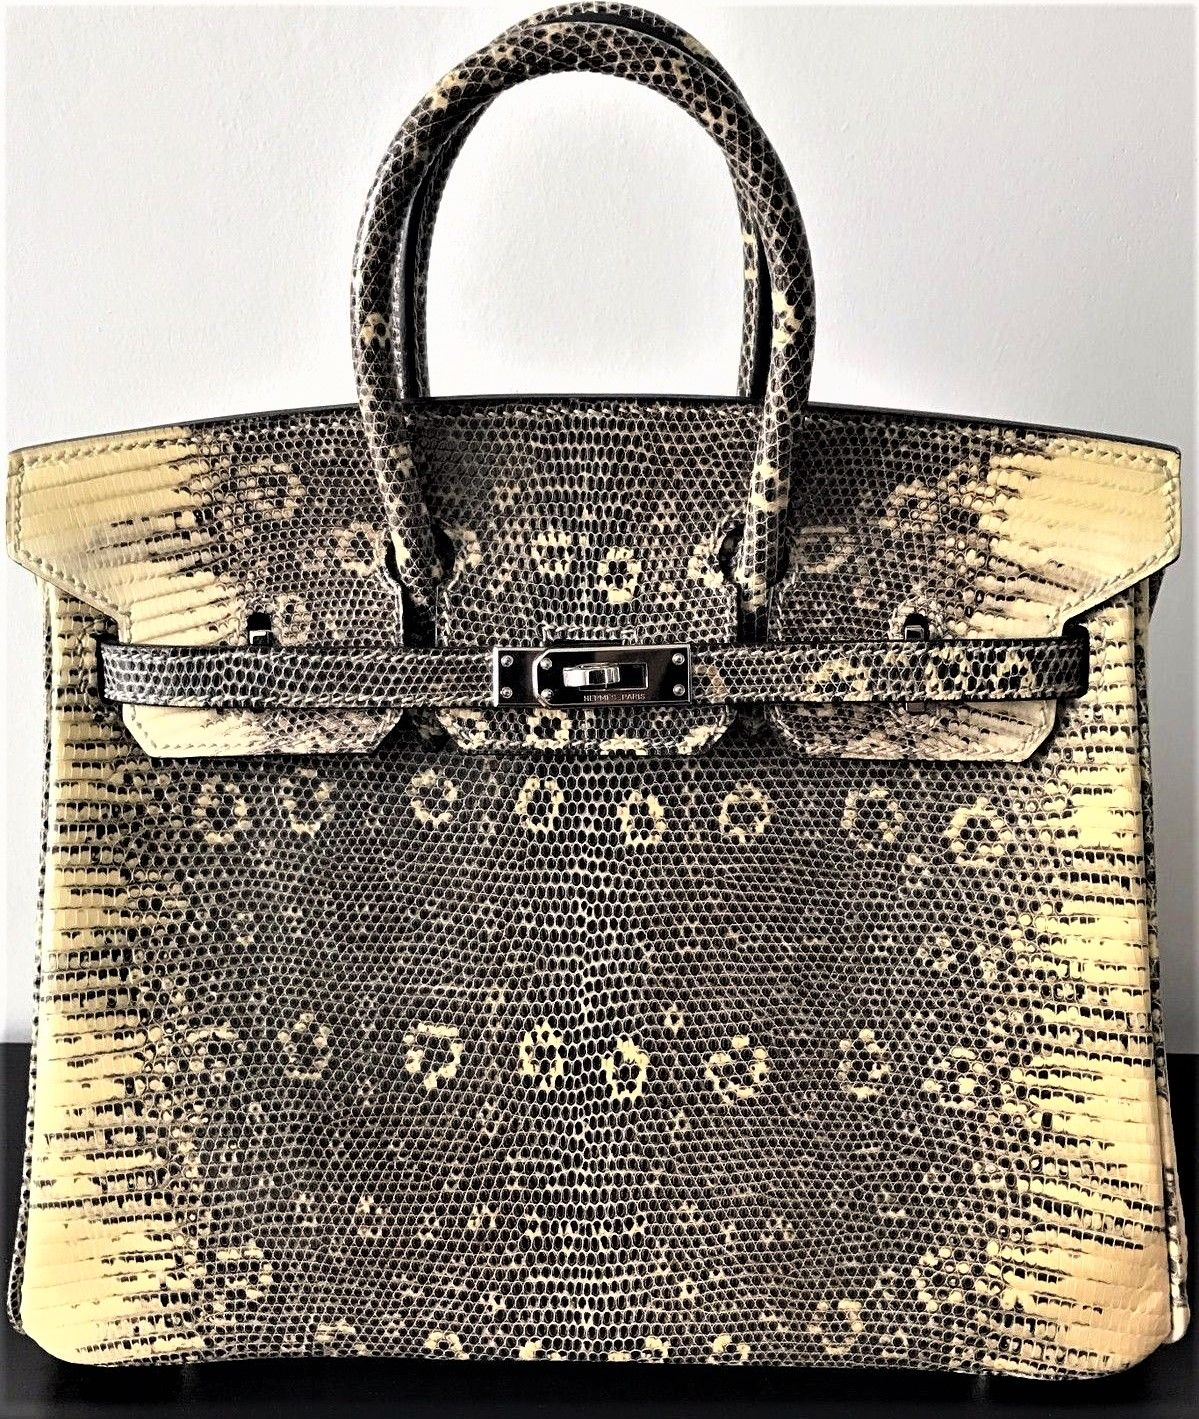 94514d2a7ca6 Extremely rare 30cm Ombre Salvator Lizard Hermes Birkin from 2015. Sensibly  priced at 30